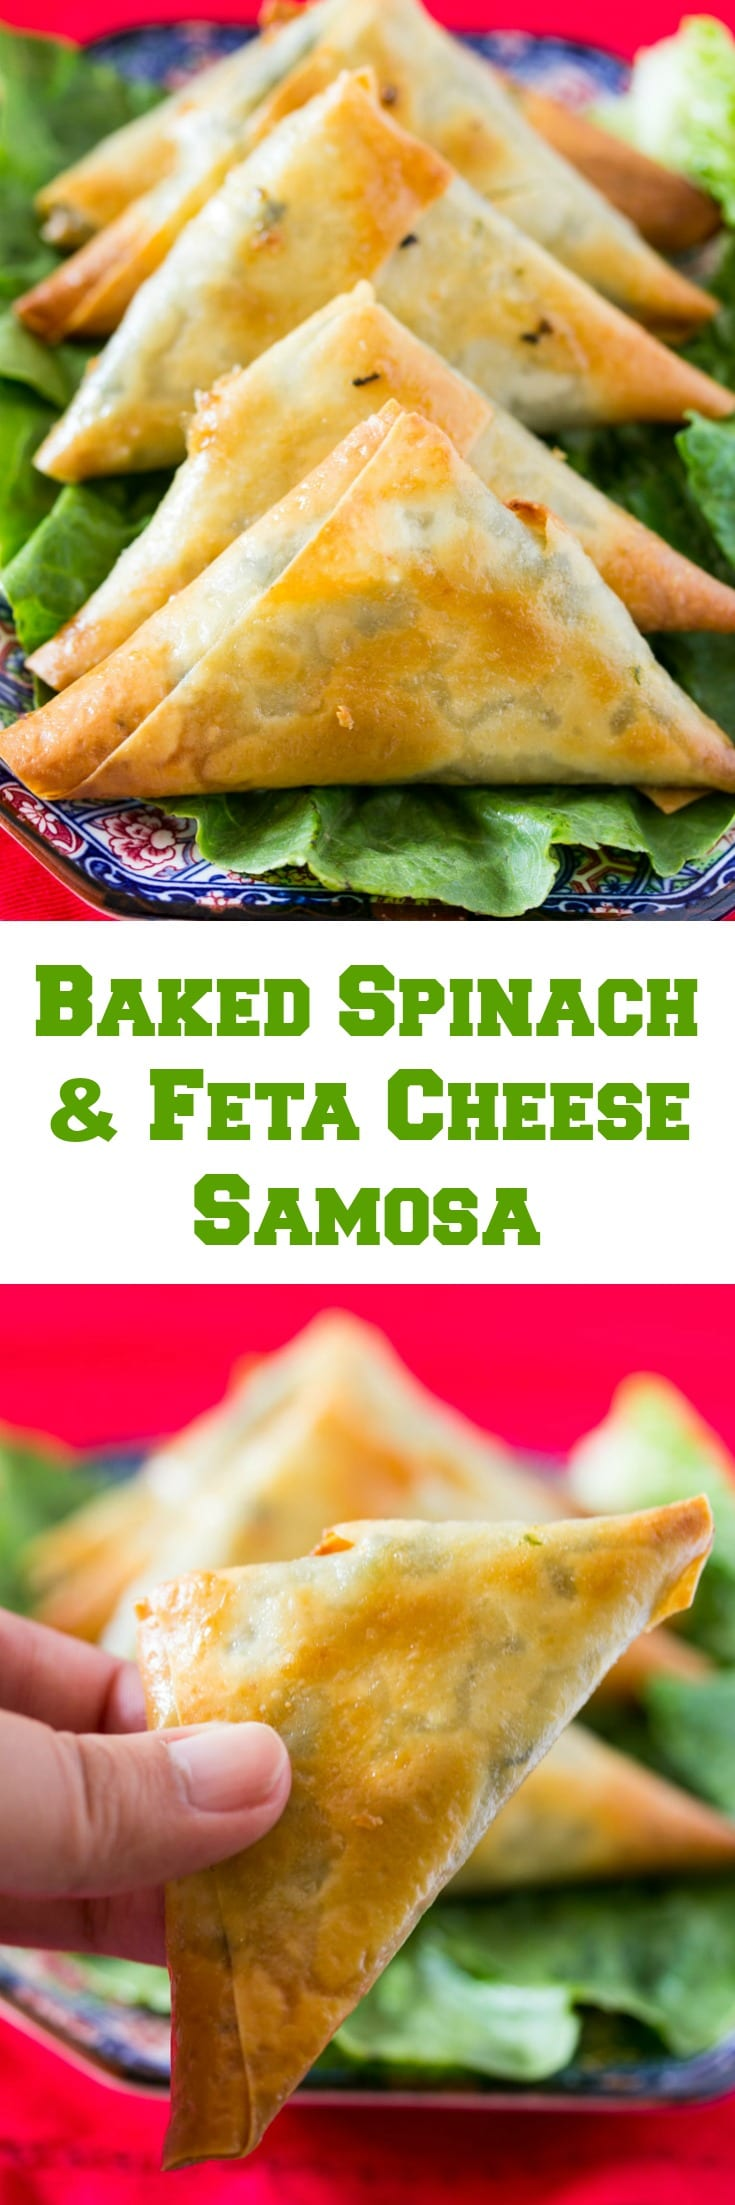 collage of baked spinach and feta cheese filled samosa